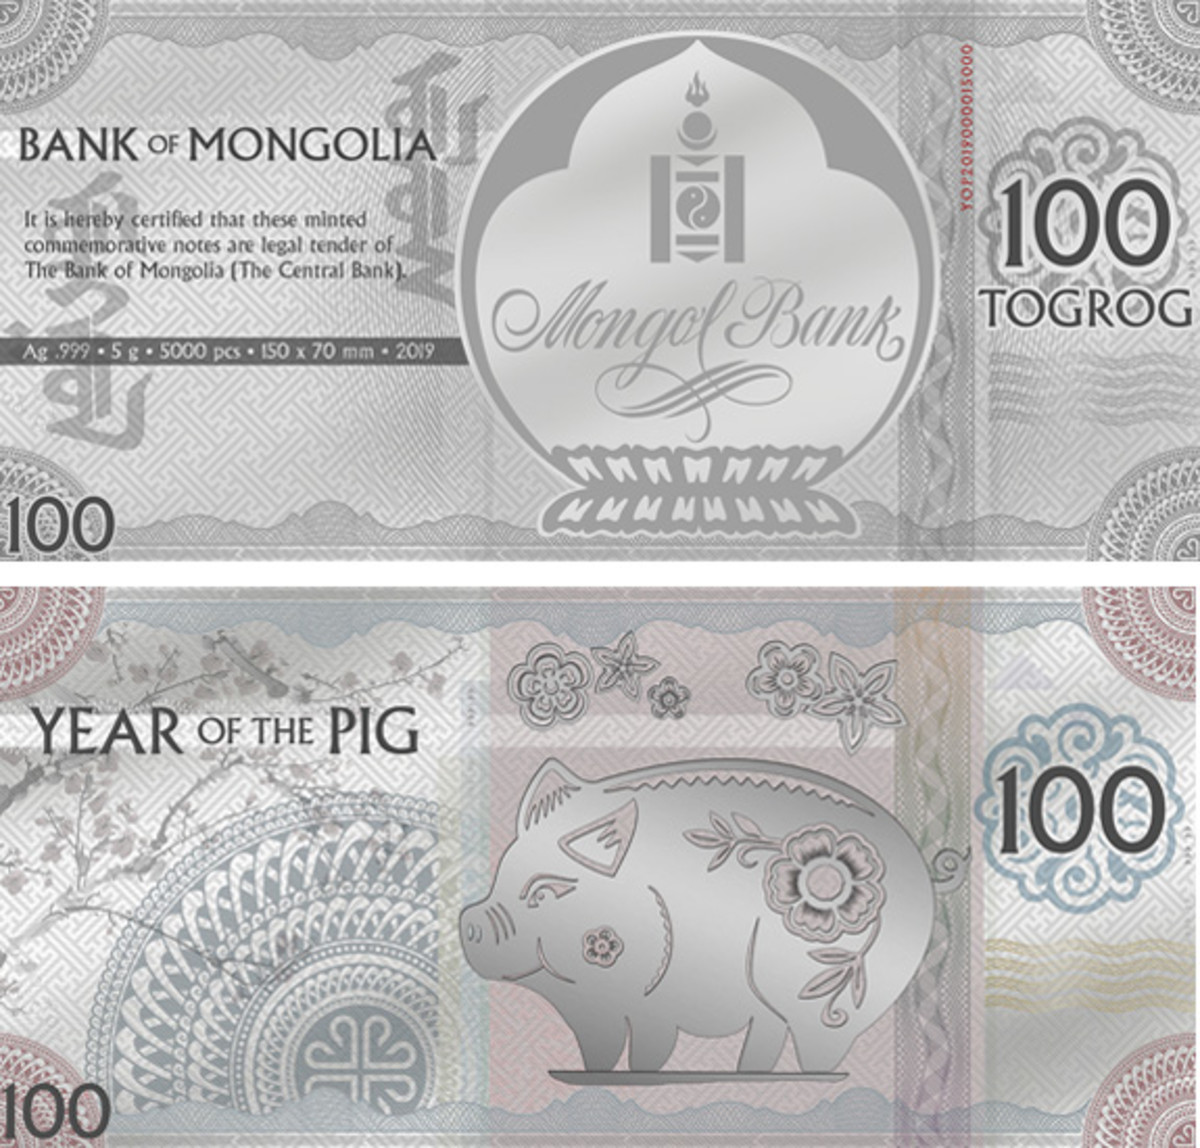 A flower-bedecked 'Jolly Silver Pig' features on Mongolbank's silver foil 100 togrog that celebrates the upcoming Year of the Earth Pig. (Images courtesy & © Coin Invest Trust)